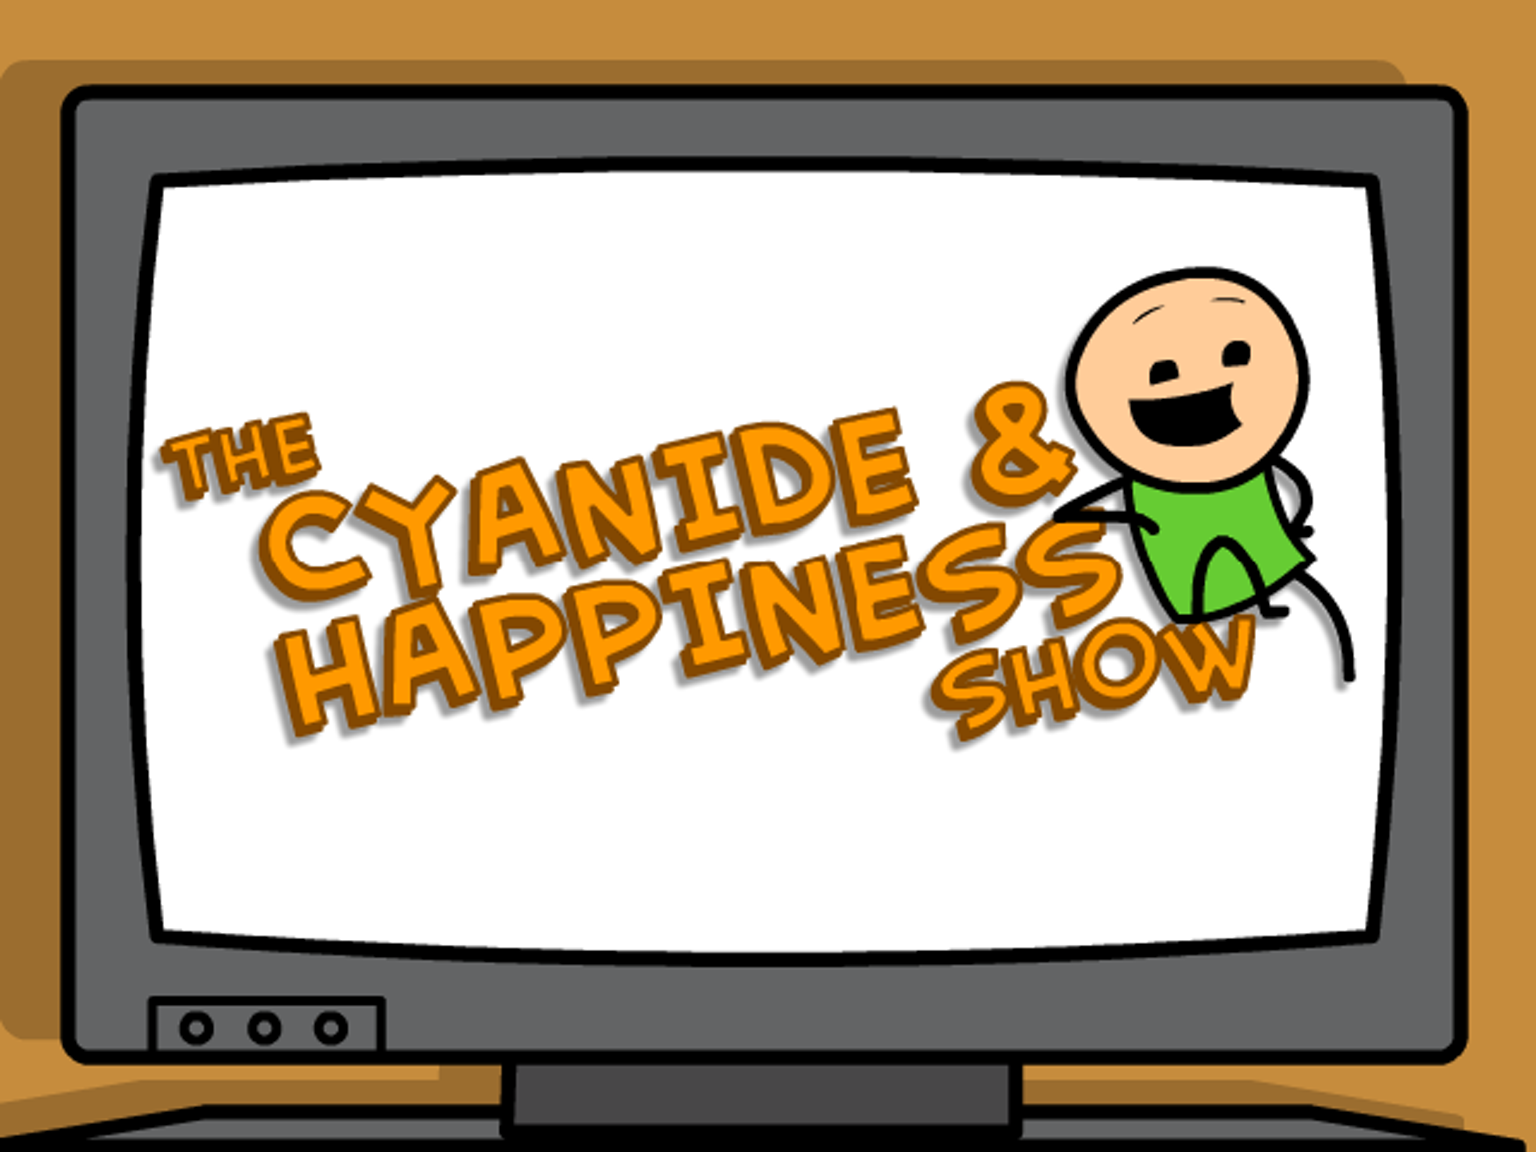 The Cyanide & Happiness Show: Season 1